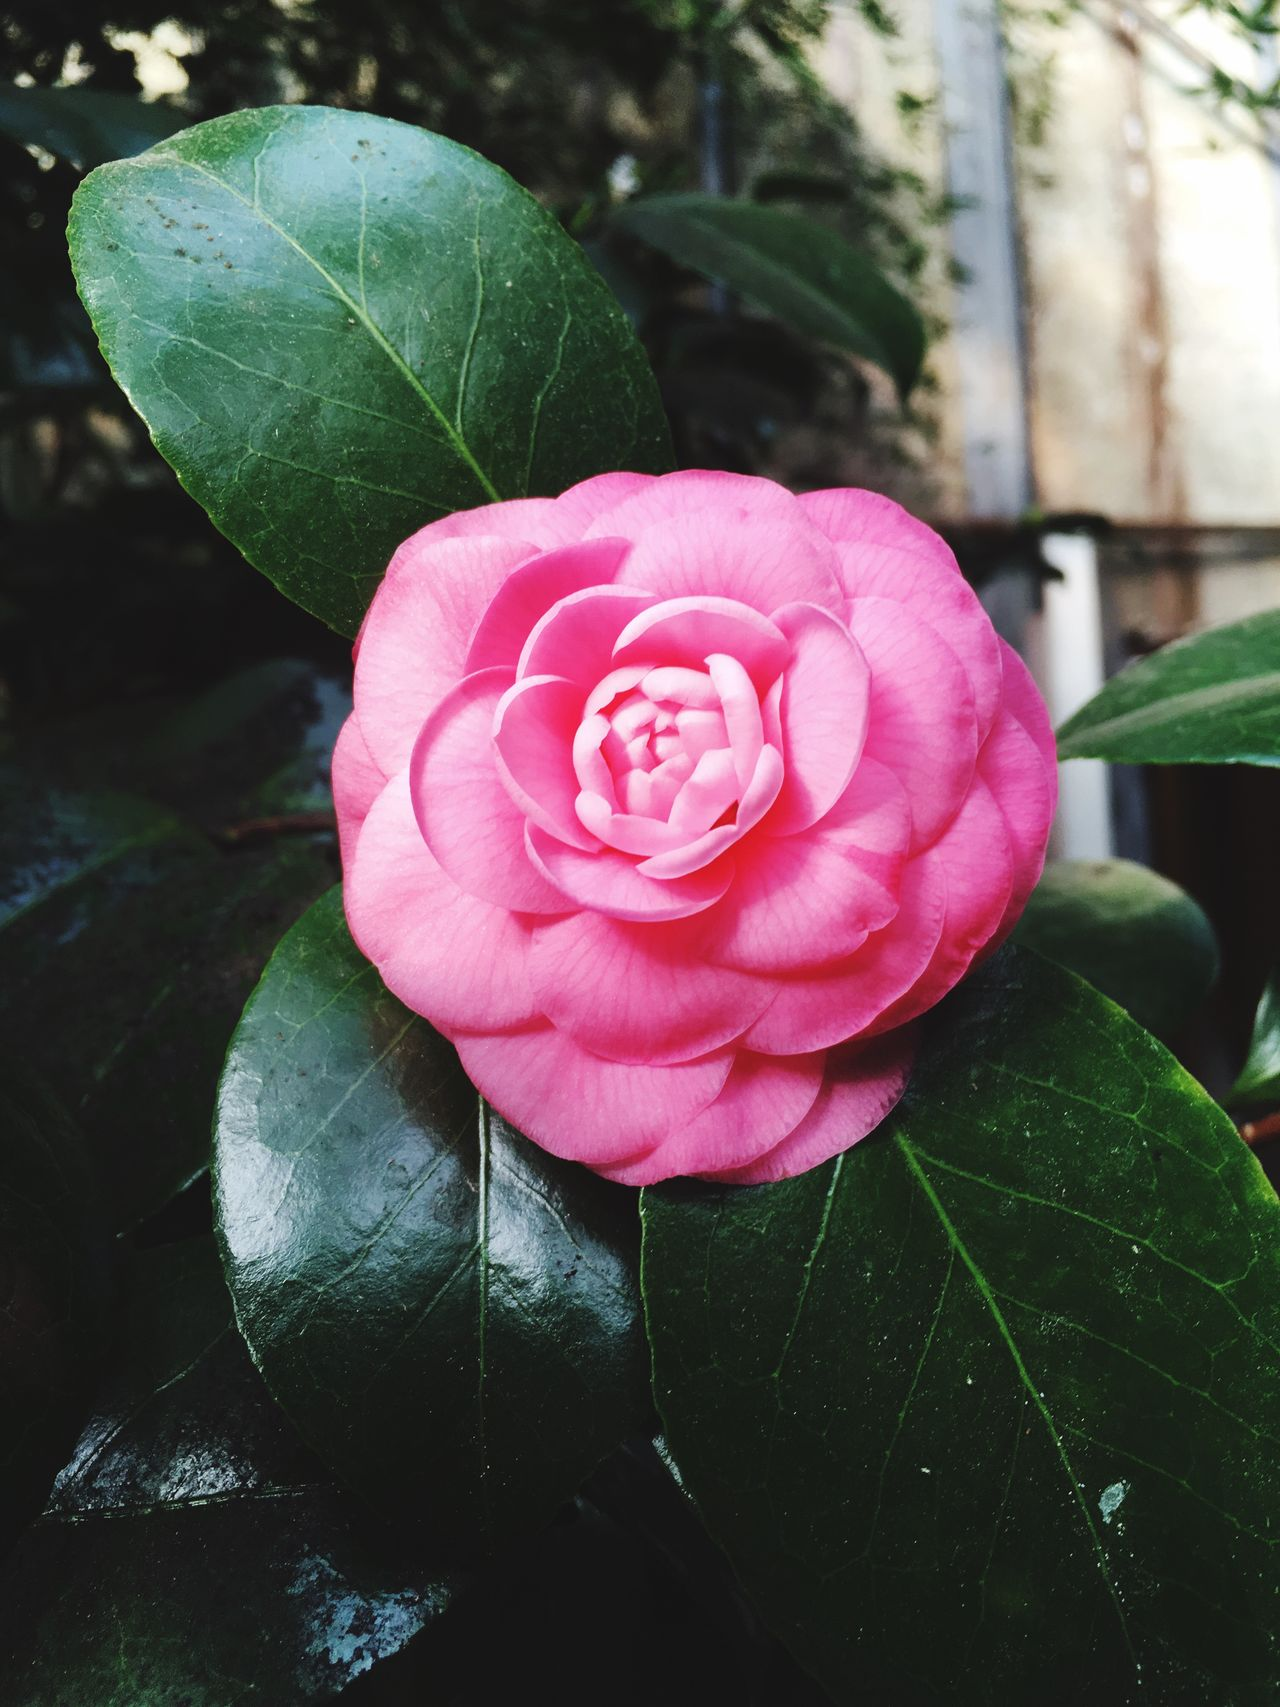 Leaf Flower Petal Nature Fragility Plant Growth Flower Head Rose - Flower Beauty In Nature Freshness Pink Color Blooming Close-up No People Day Outdoors Camellia